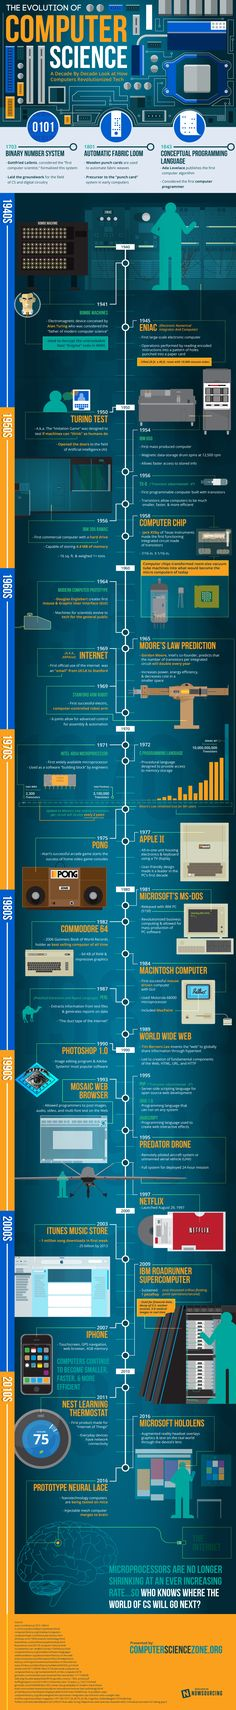 How Has Computer Science Changed Over the Years?                                                                                                                                                     More